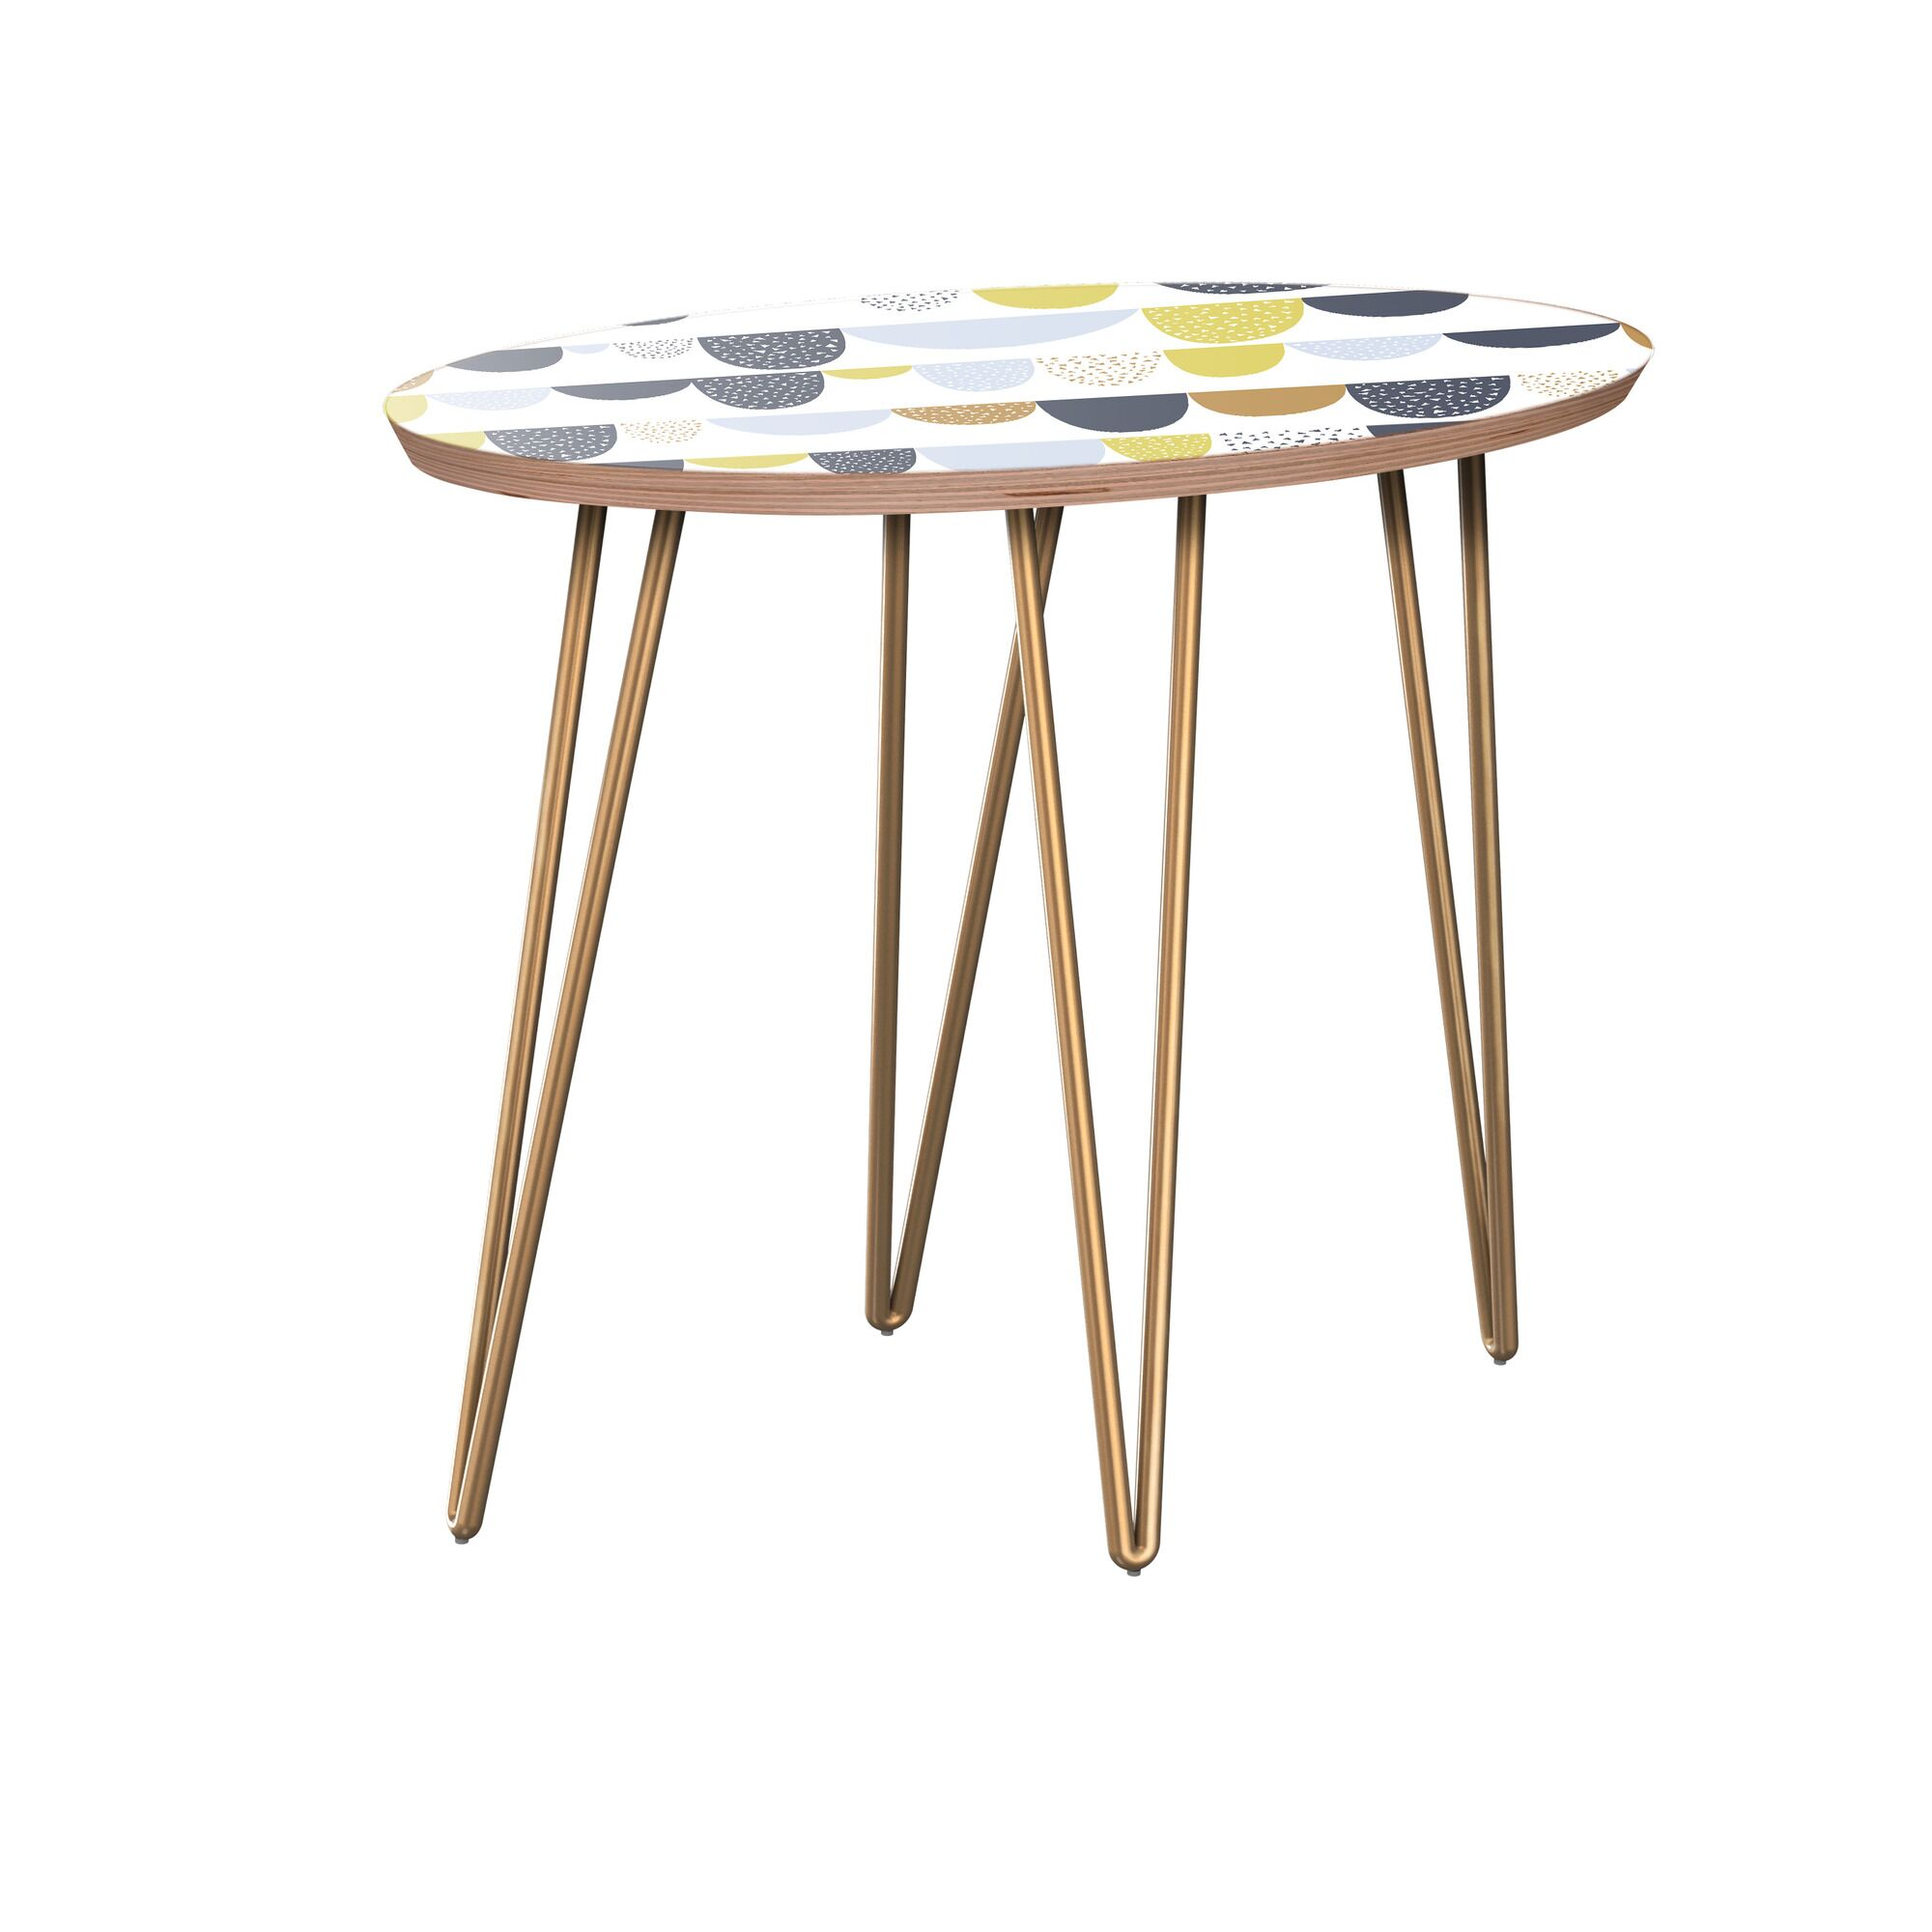 Junior End Table Table Base Color: Brass, Table Top Color: Walnut